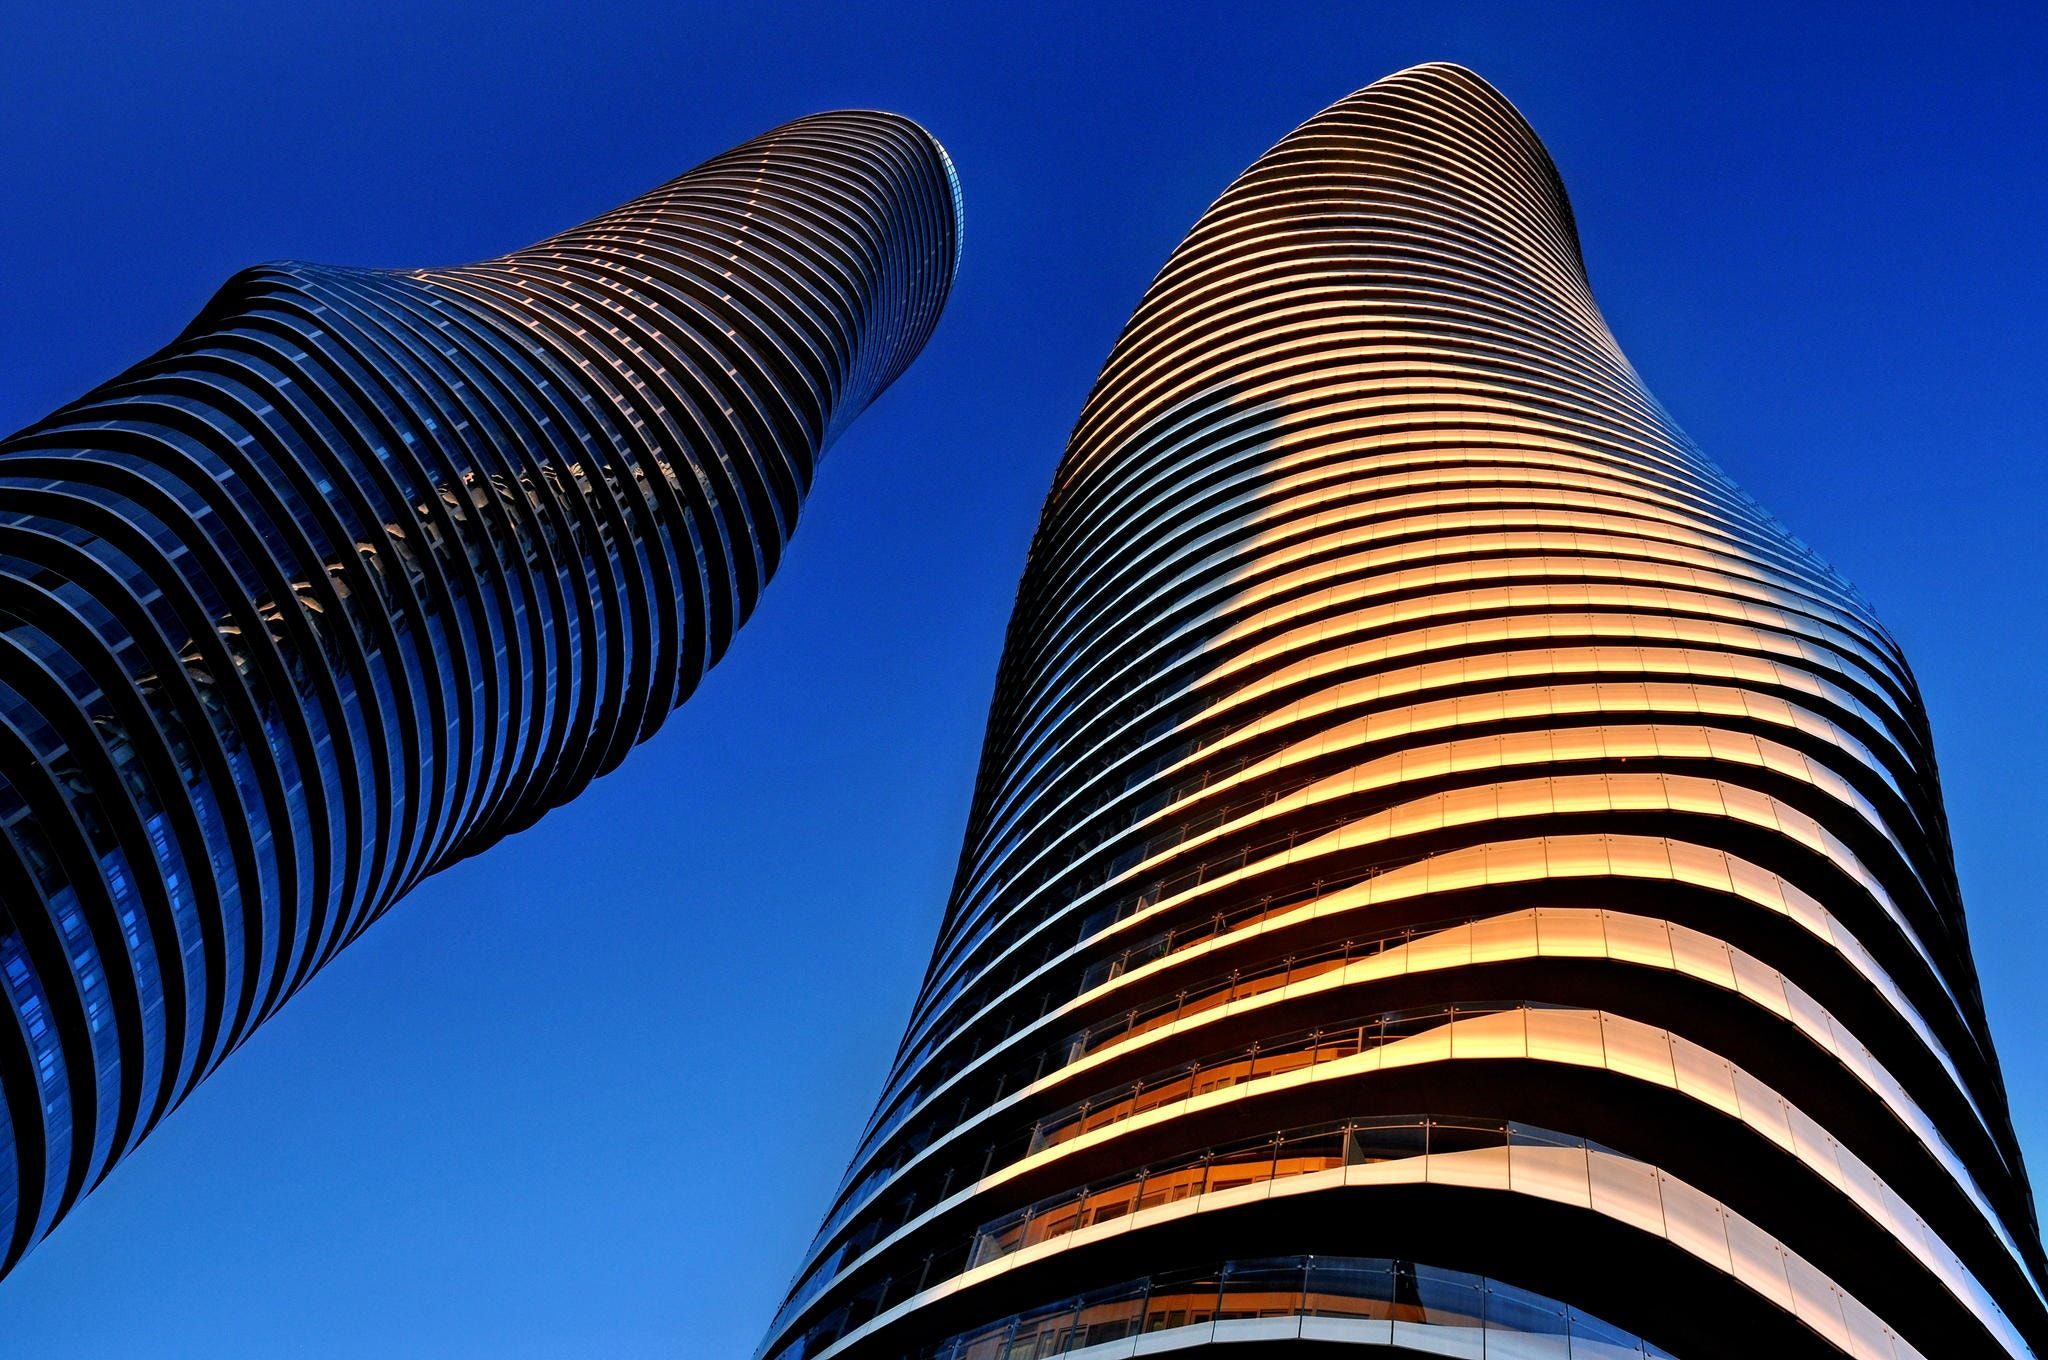 Marylin Monroeu0027s Curves   These Stunning, Voluptuous Towers Are Part Of The  Five Building Great Ideas